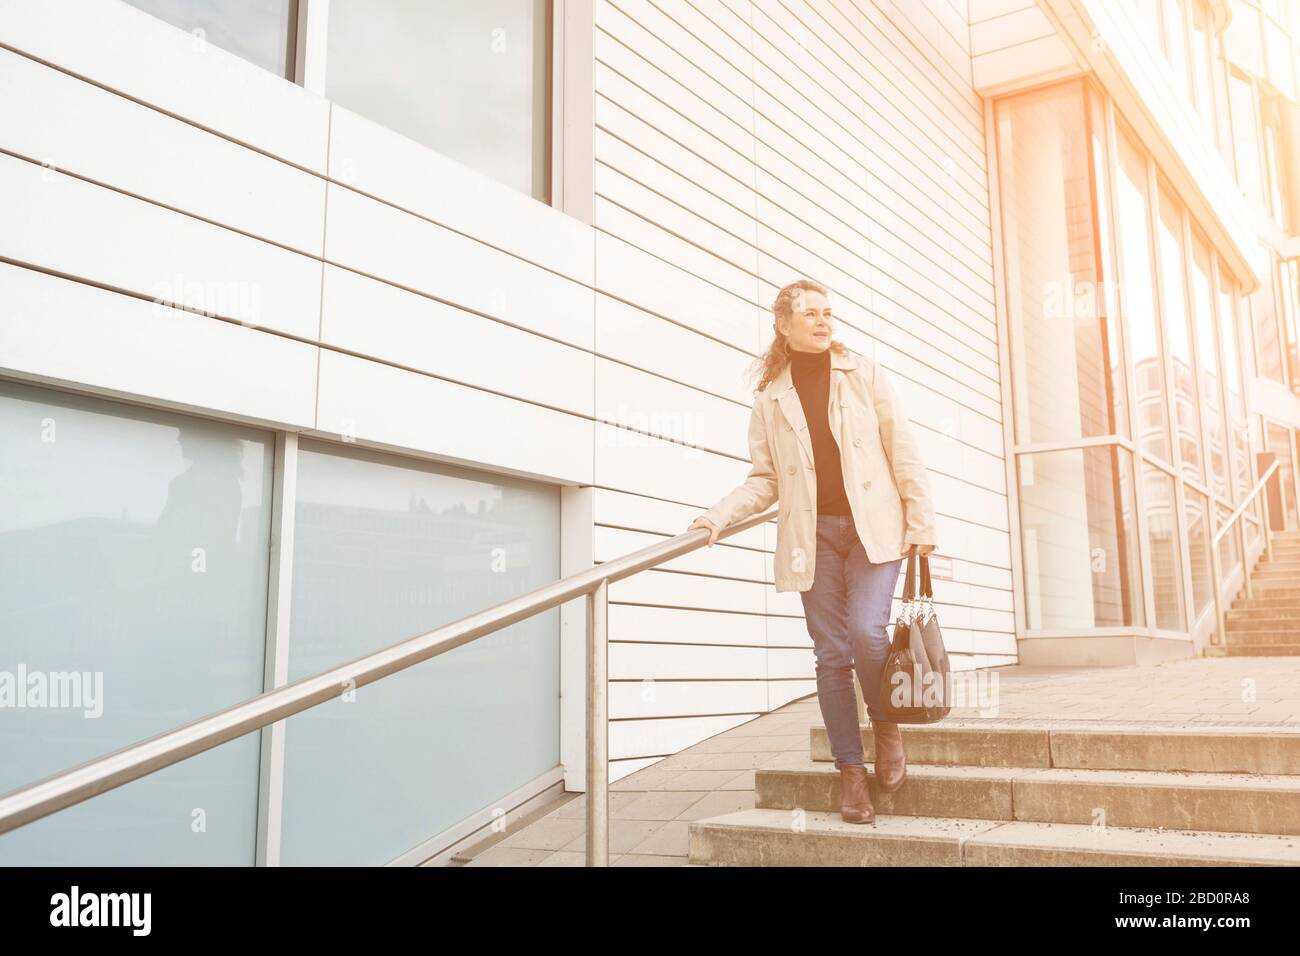 Attractive stylish mature woman descending exterior steps in town by the warm glow of the sun looking off to the side Stock Photo